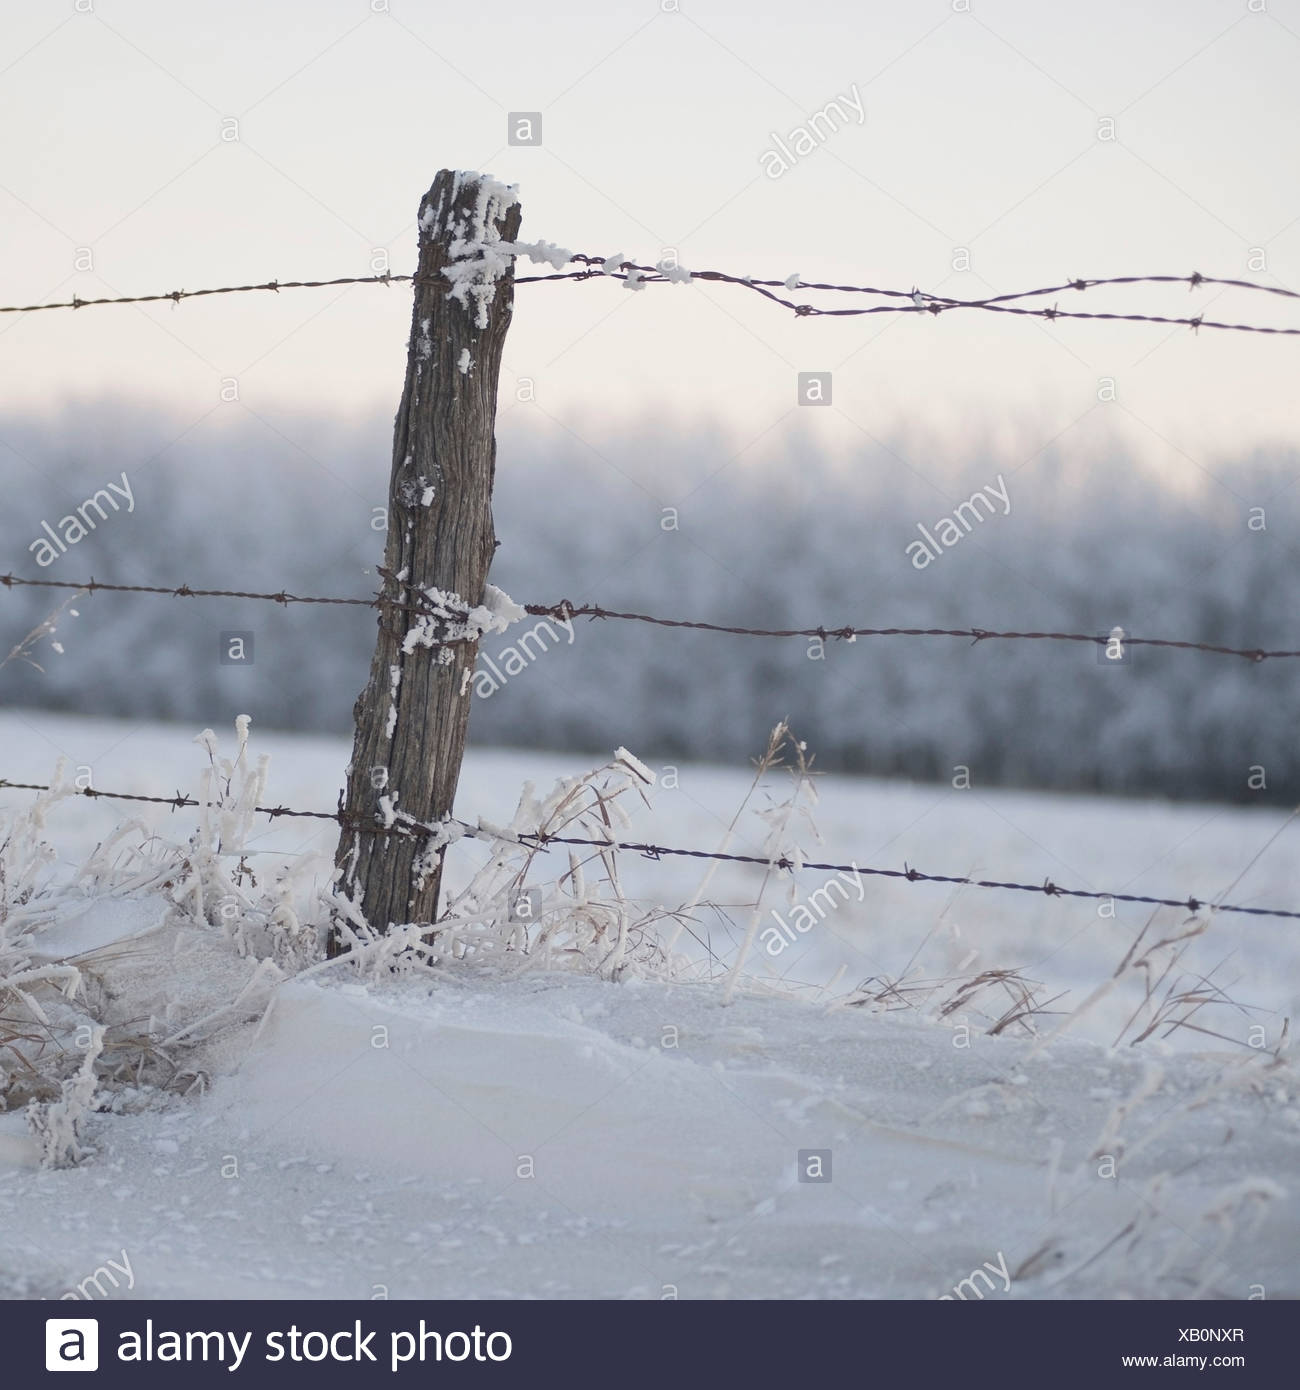 Winnipeg, Manitoba, Canada; A Barbed Wire Fence In The Snow In Winter - Stock Image